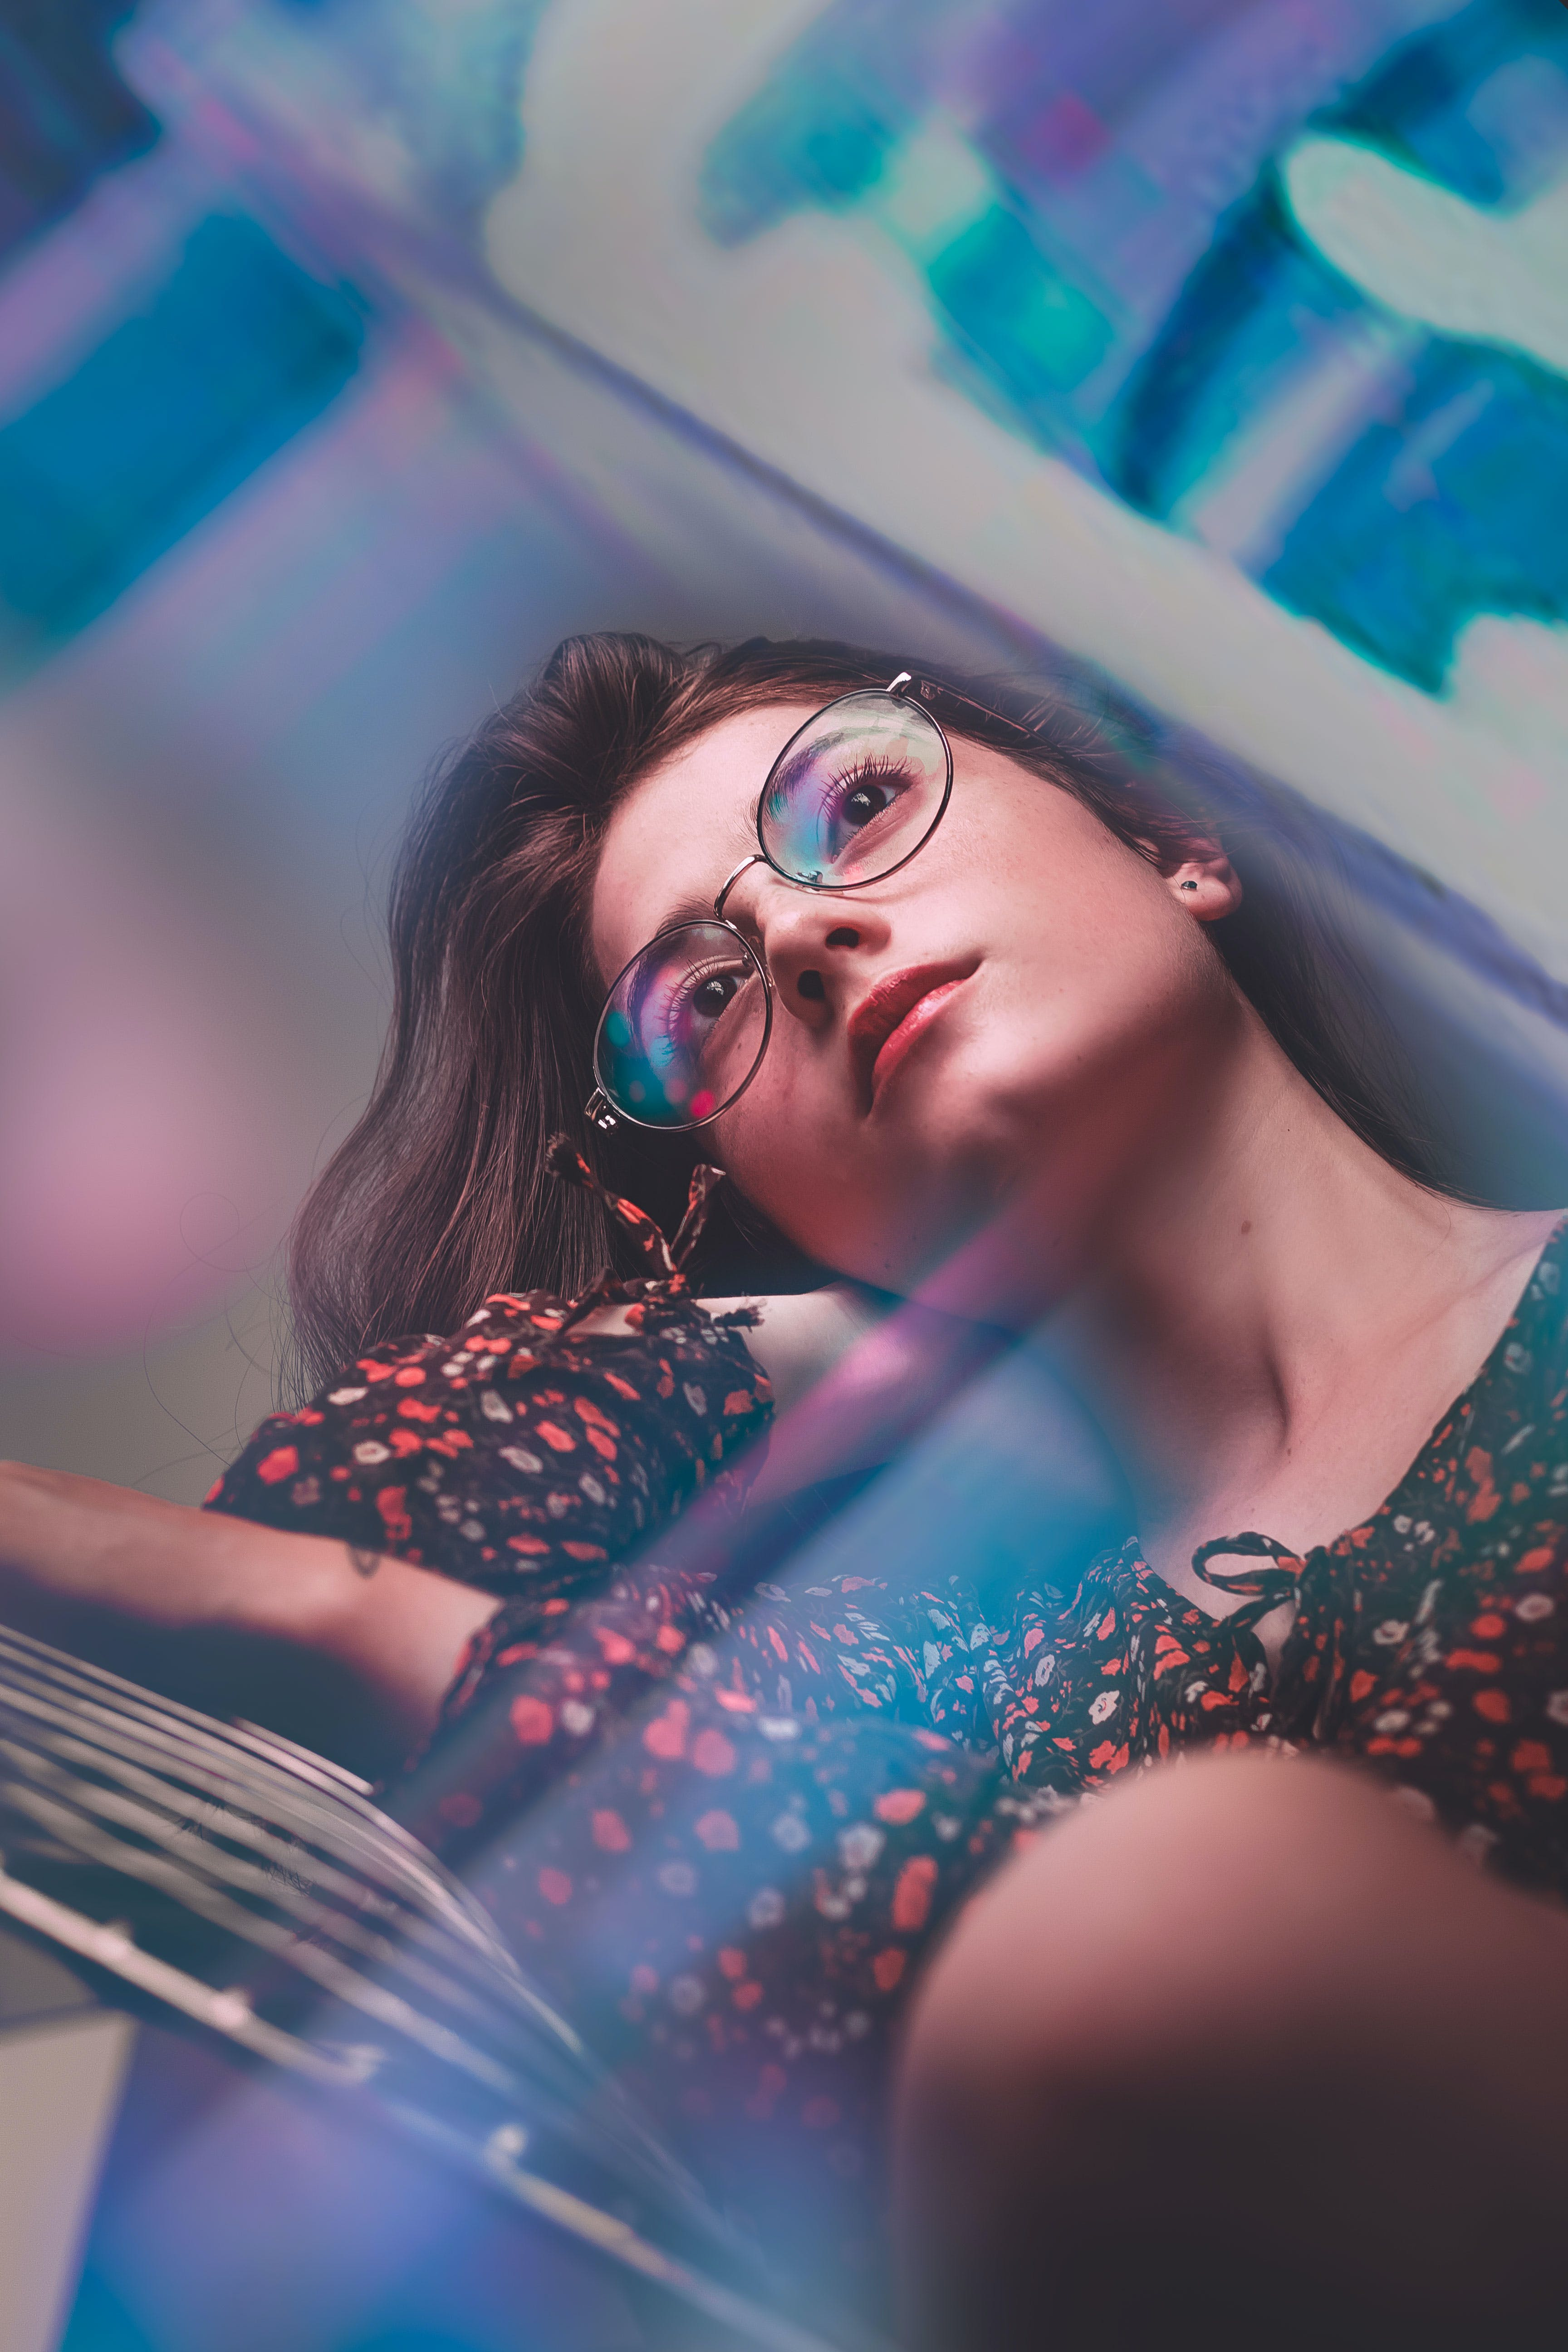 Selective Focus Photo of Woman Wearing Eyeglasses and Floral Top